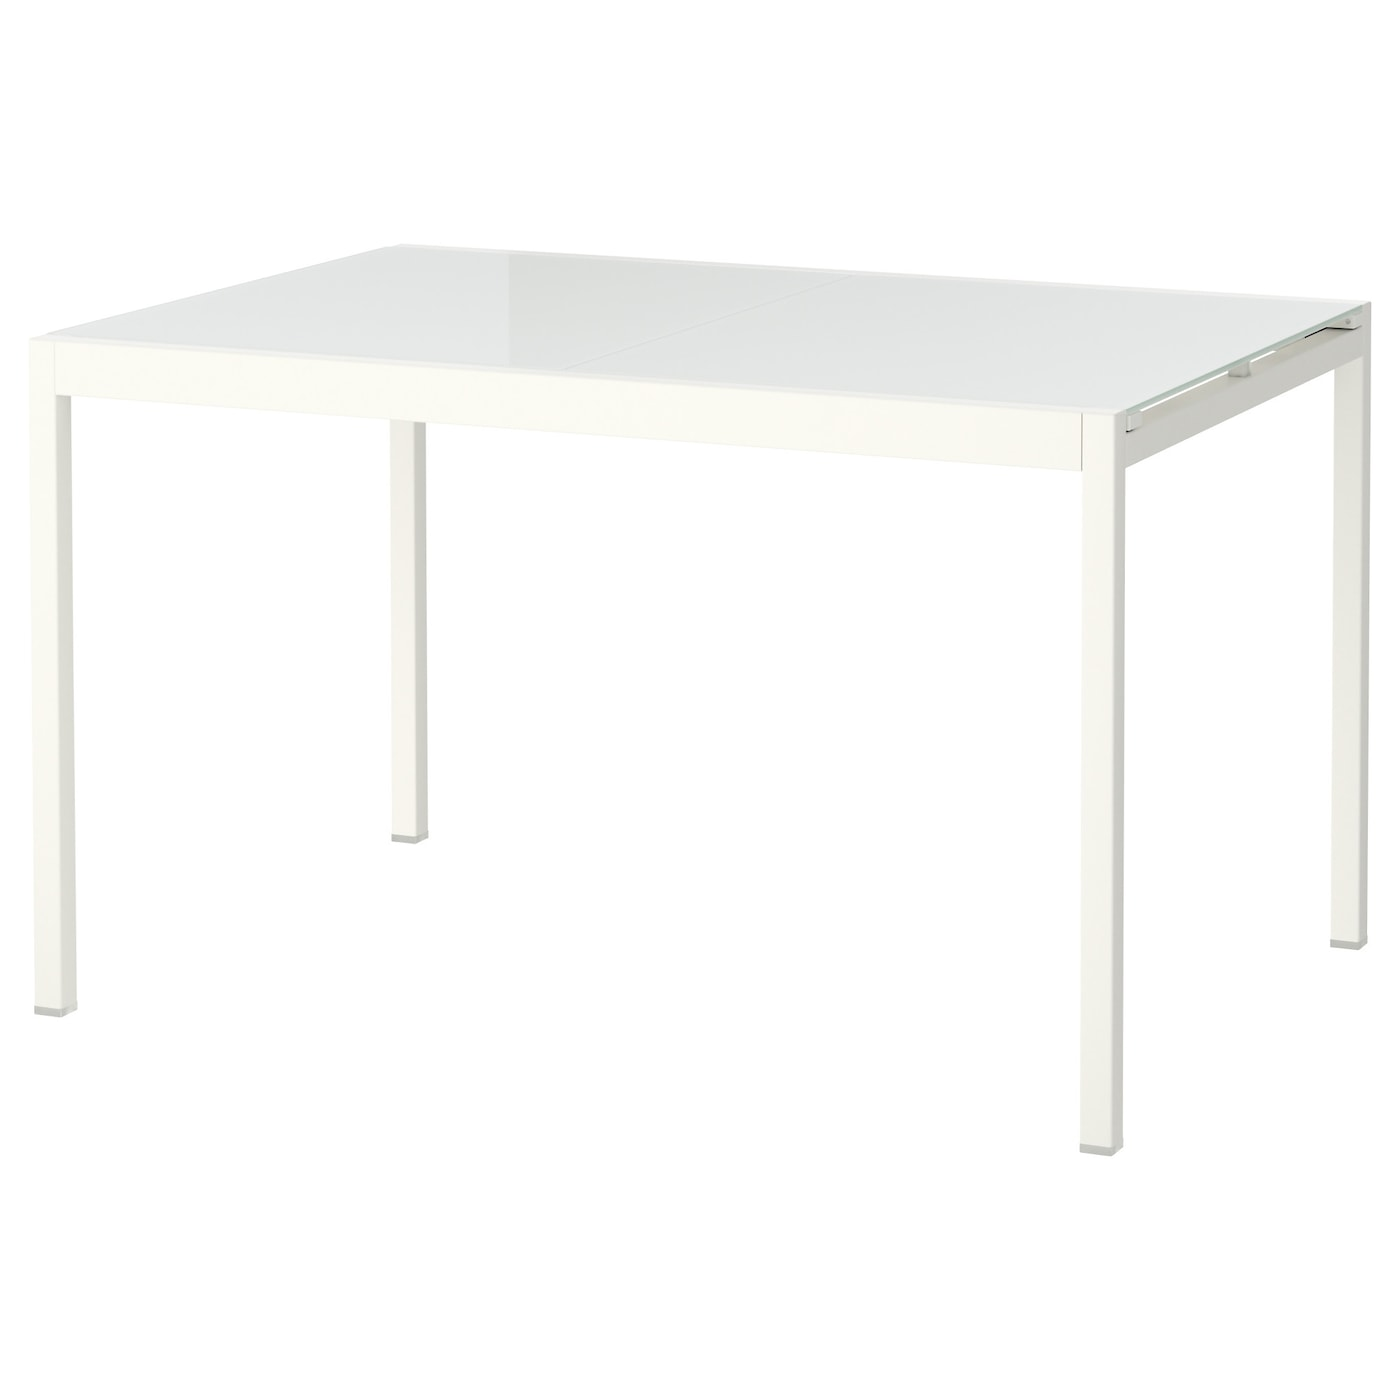 Glivarp table extensible blanc 125 188x85 cm ikea for Ikea table de salle a manger